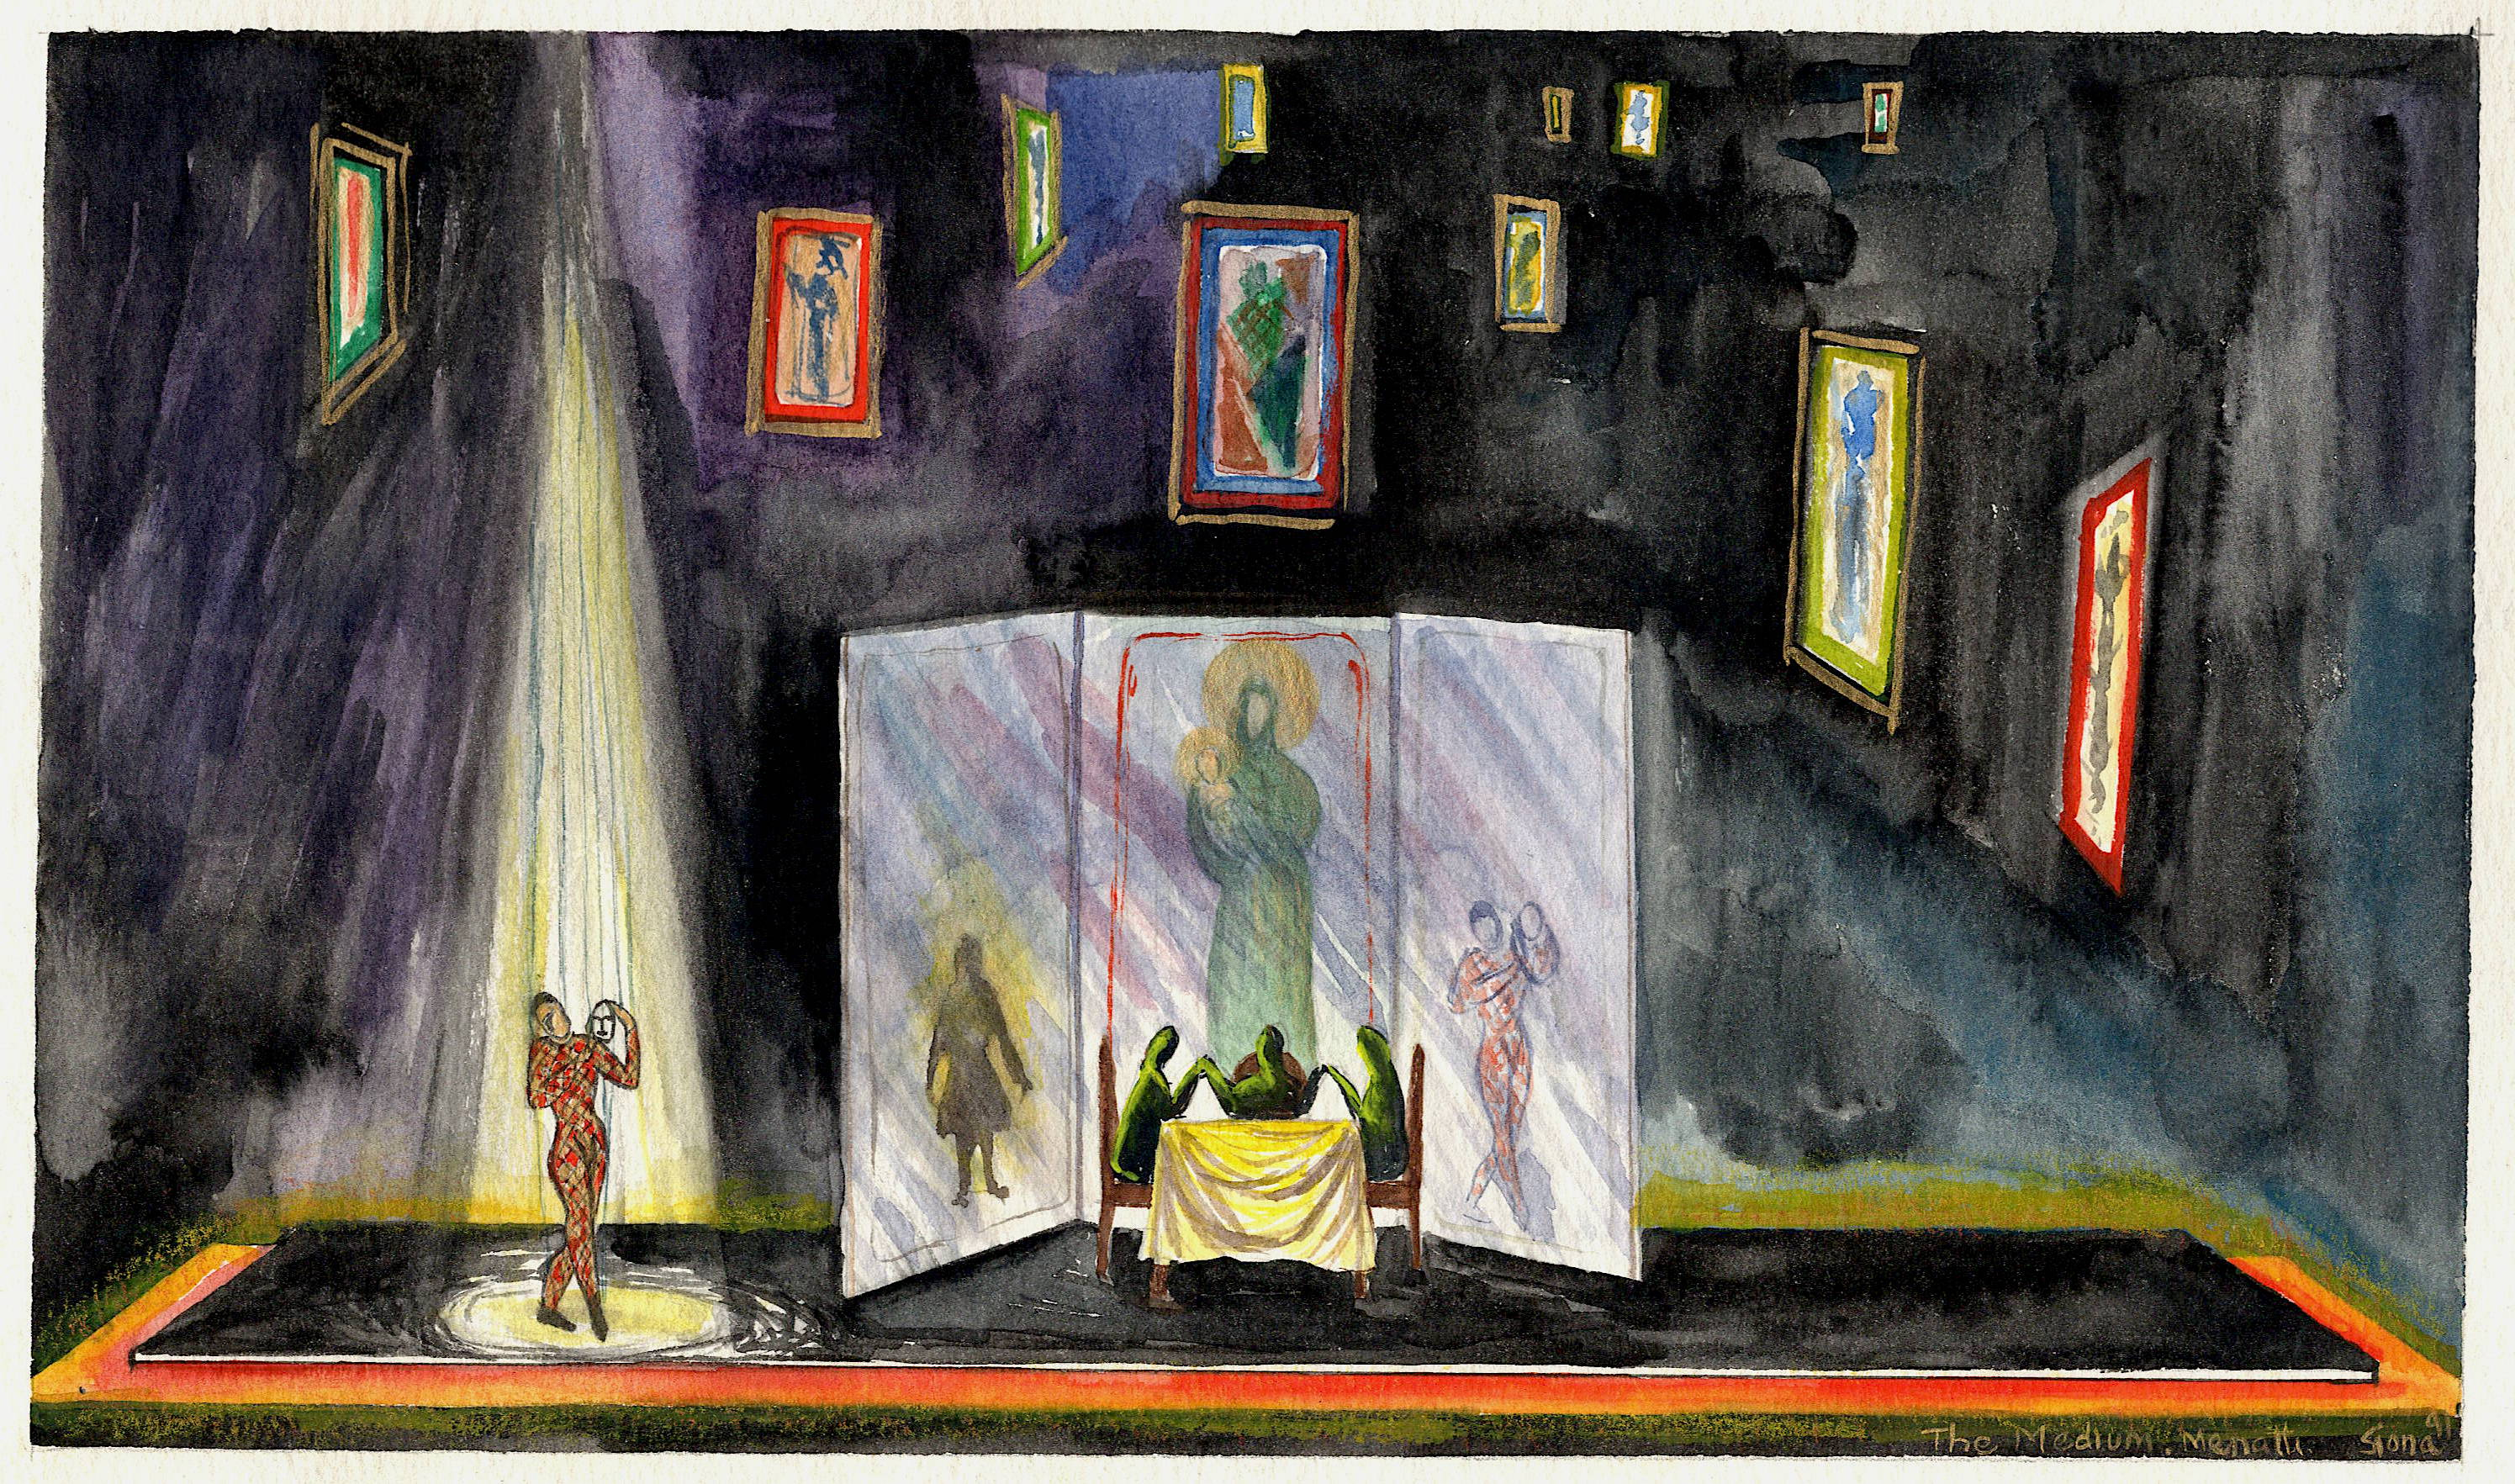 The Medium by Gian Carlo Menotti - Set design renderings - 2